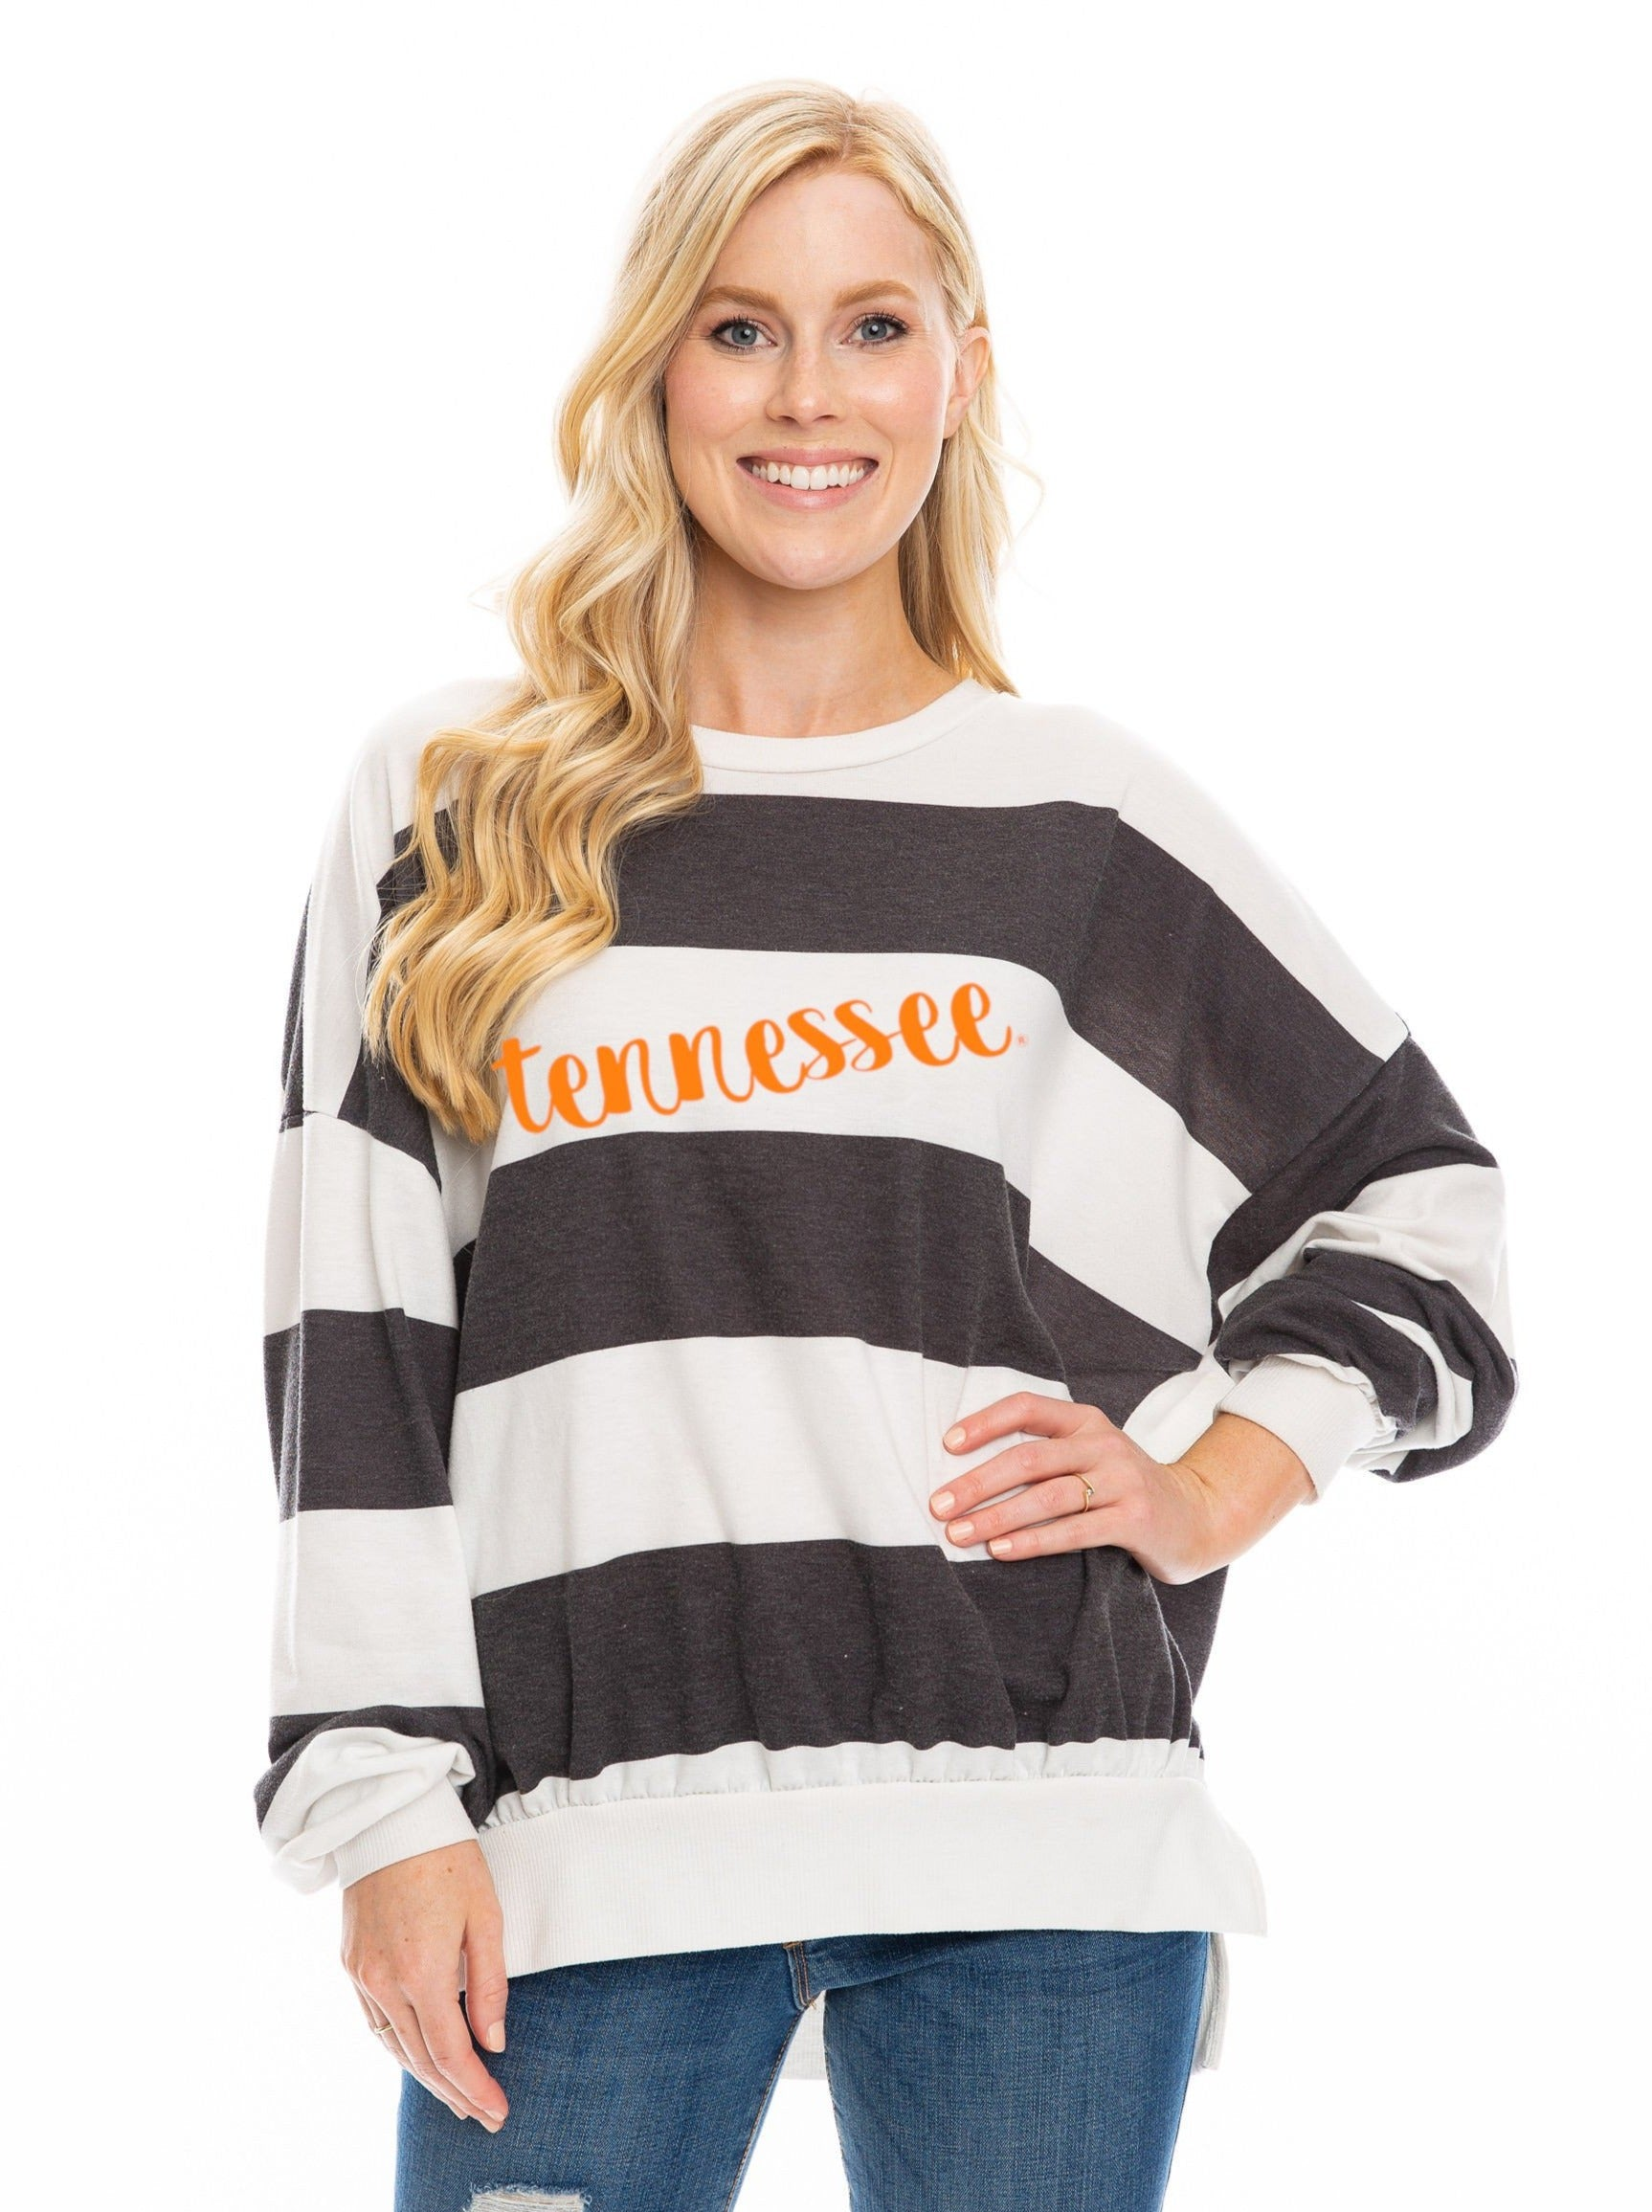 The Tennessee Oversized Long Sleeve